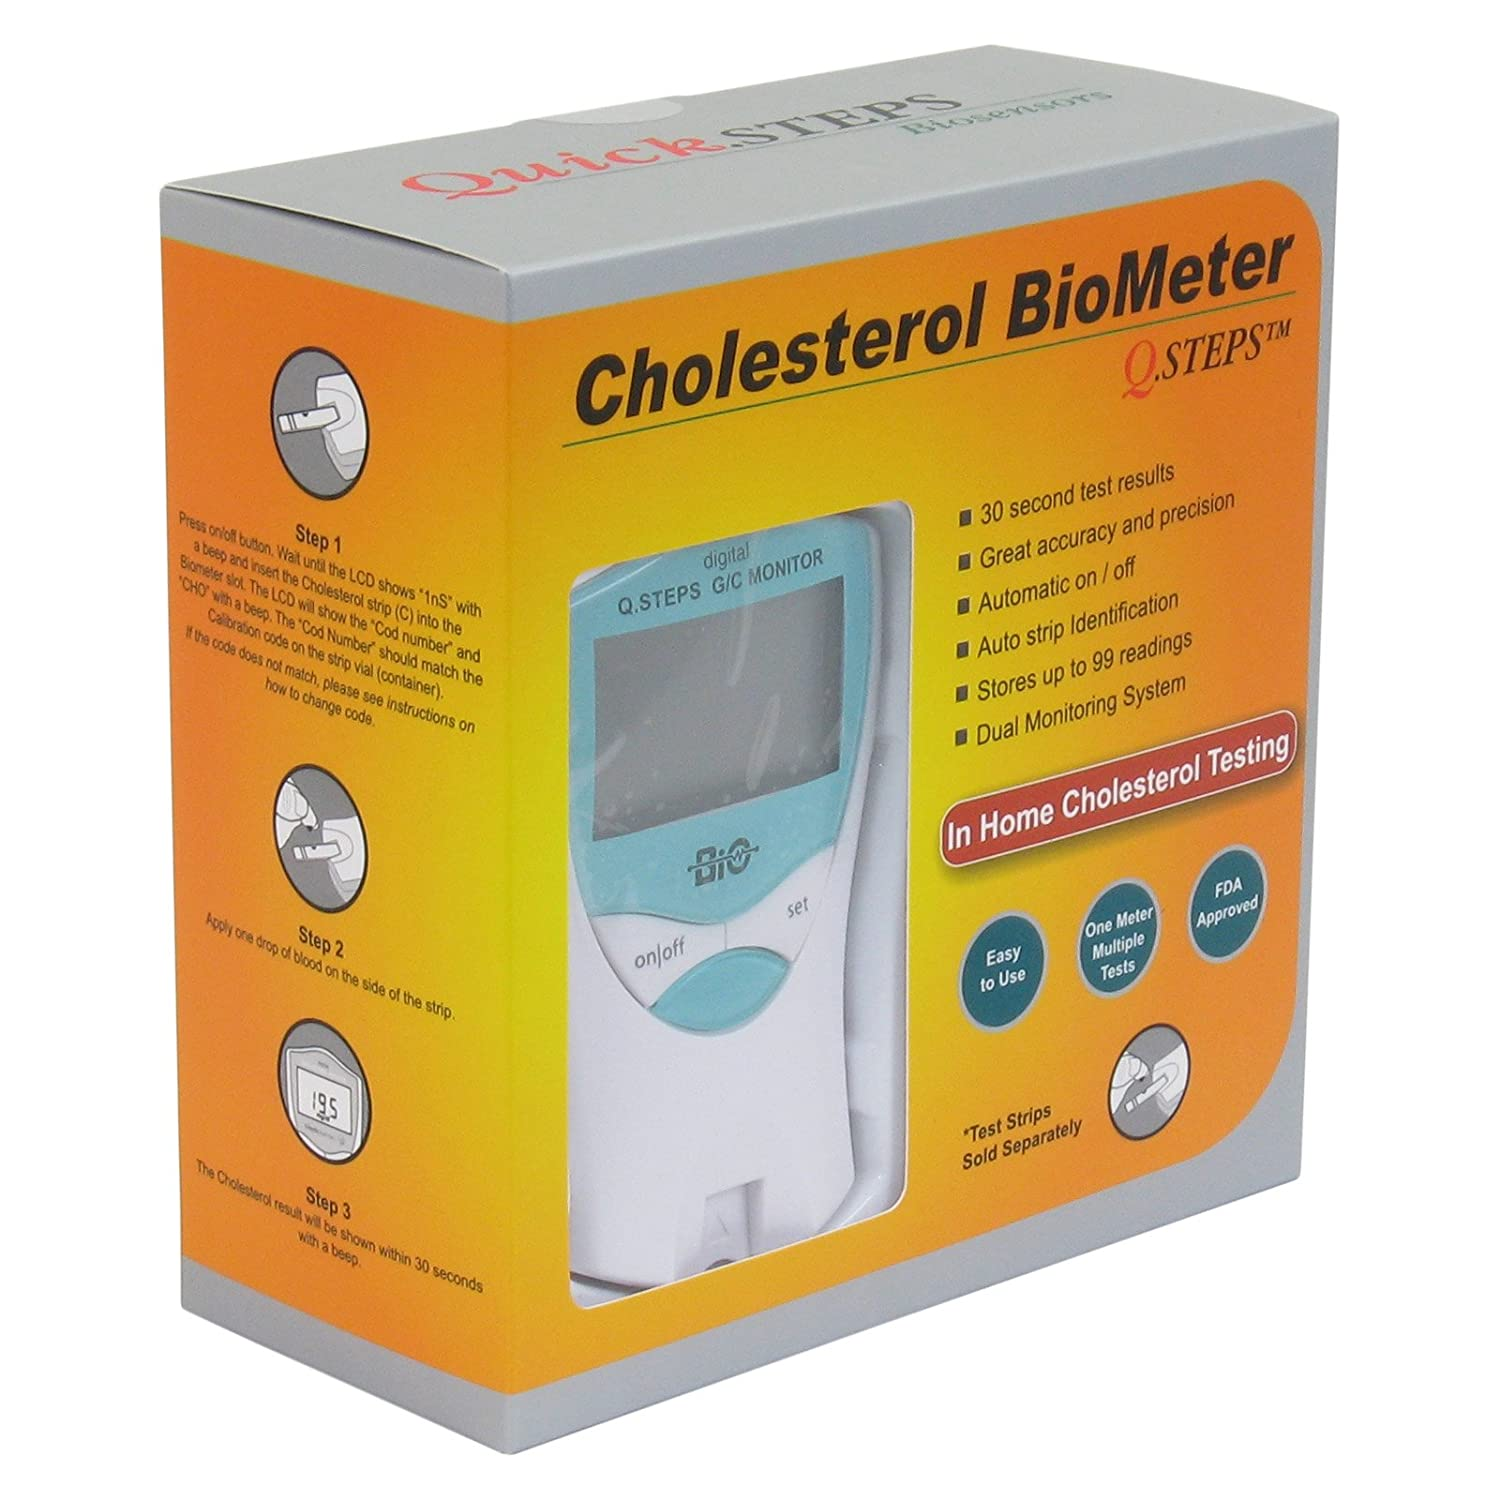 Q Steps Cholesterol Biometer Glucose Monitoring System Meter Health Personal Care